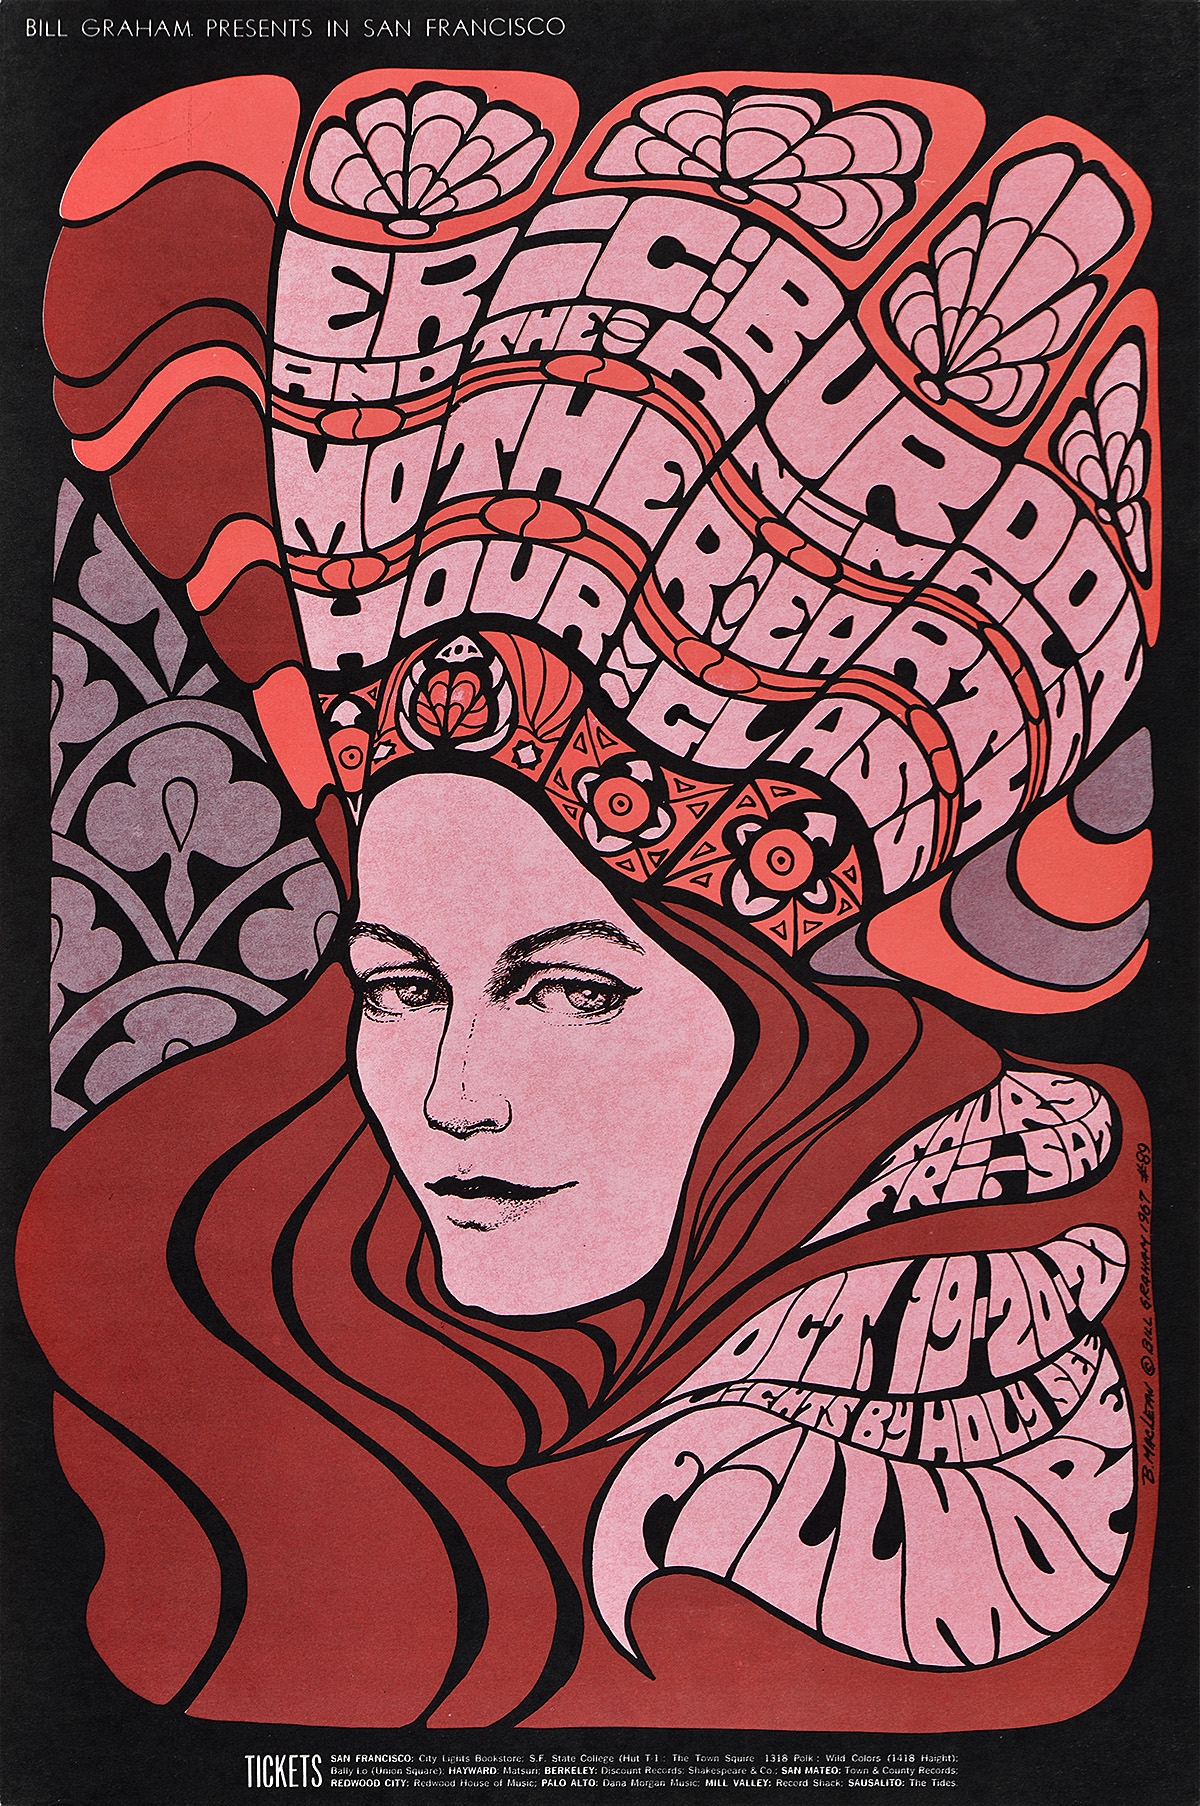 illustrational psychedelic inspired poster of a woman with flowing hair and an oversized crown filled with words